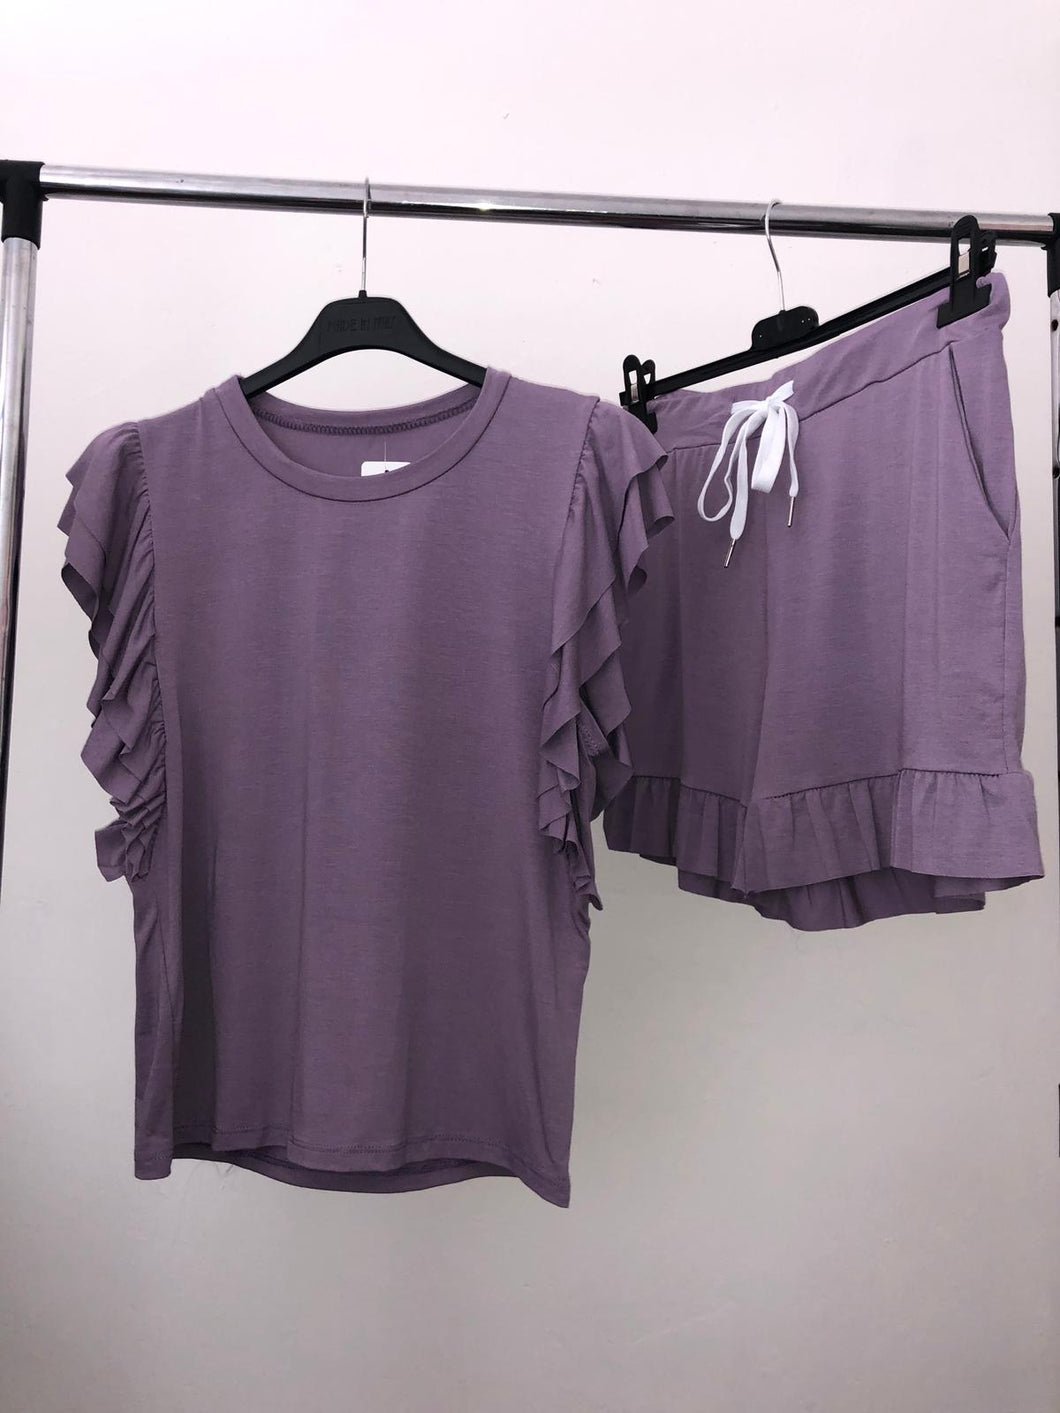 Cali Tshirt & Shorts Set - Purple